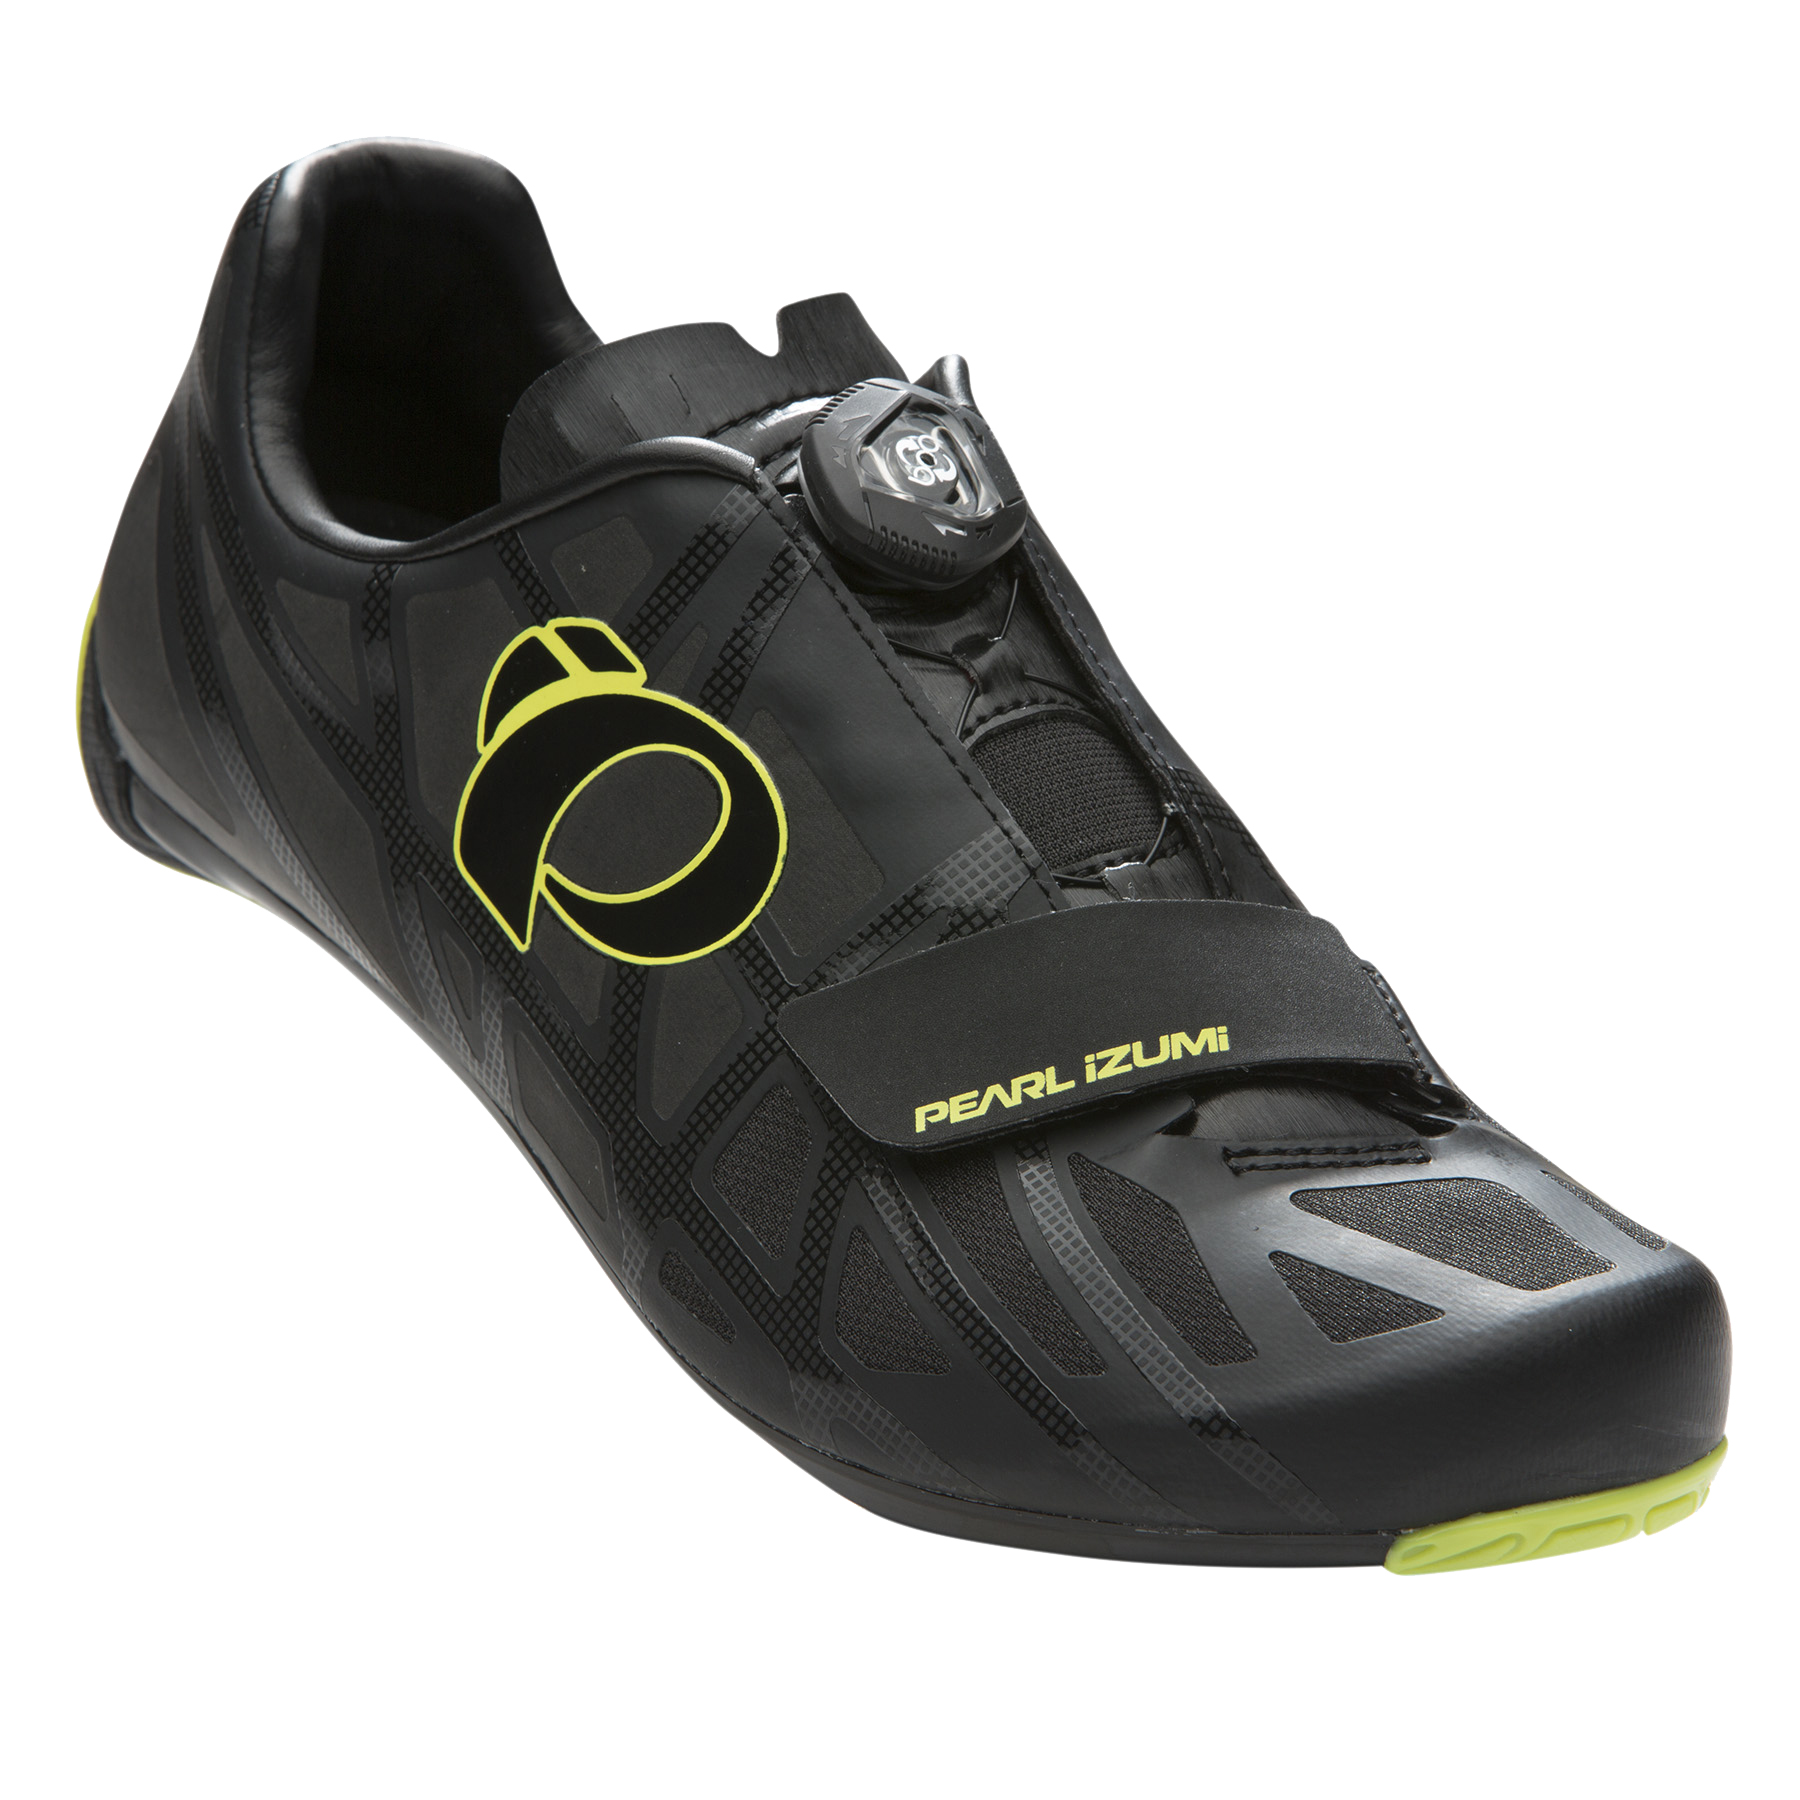 24e28b7917eaab Pearl Izumi Race Road IV Cycling Shoes - Men s